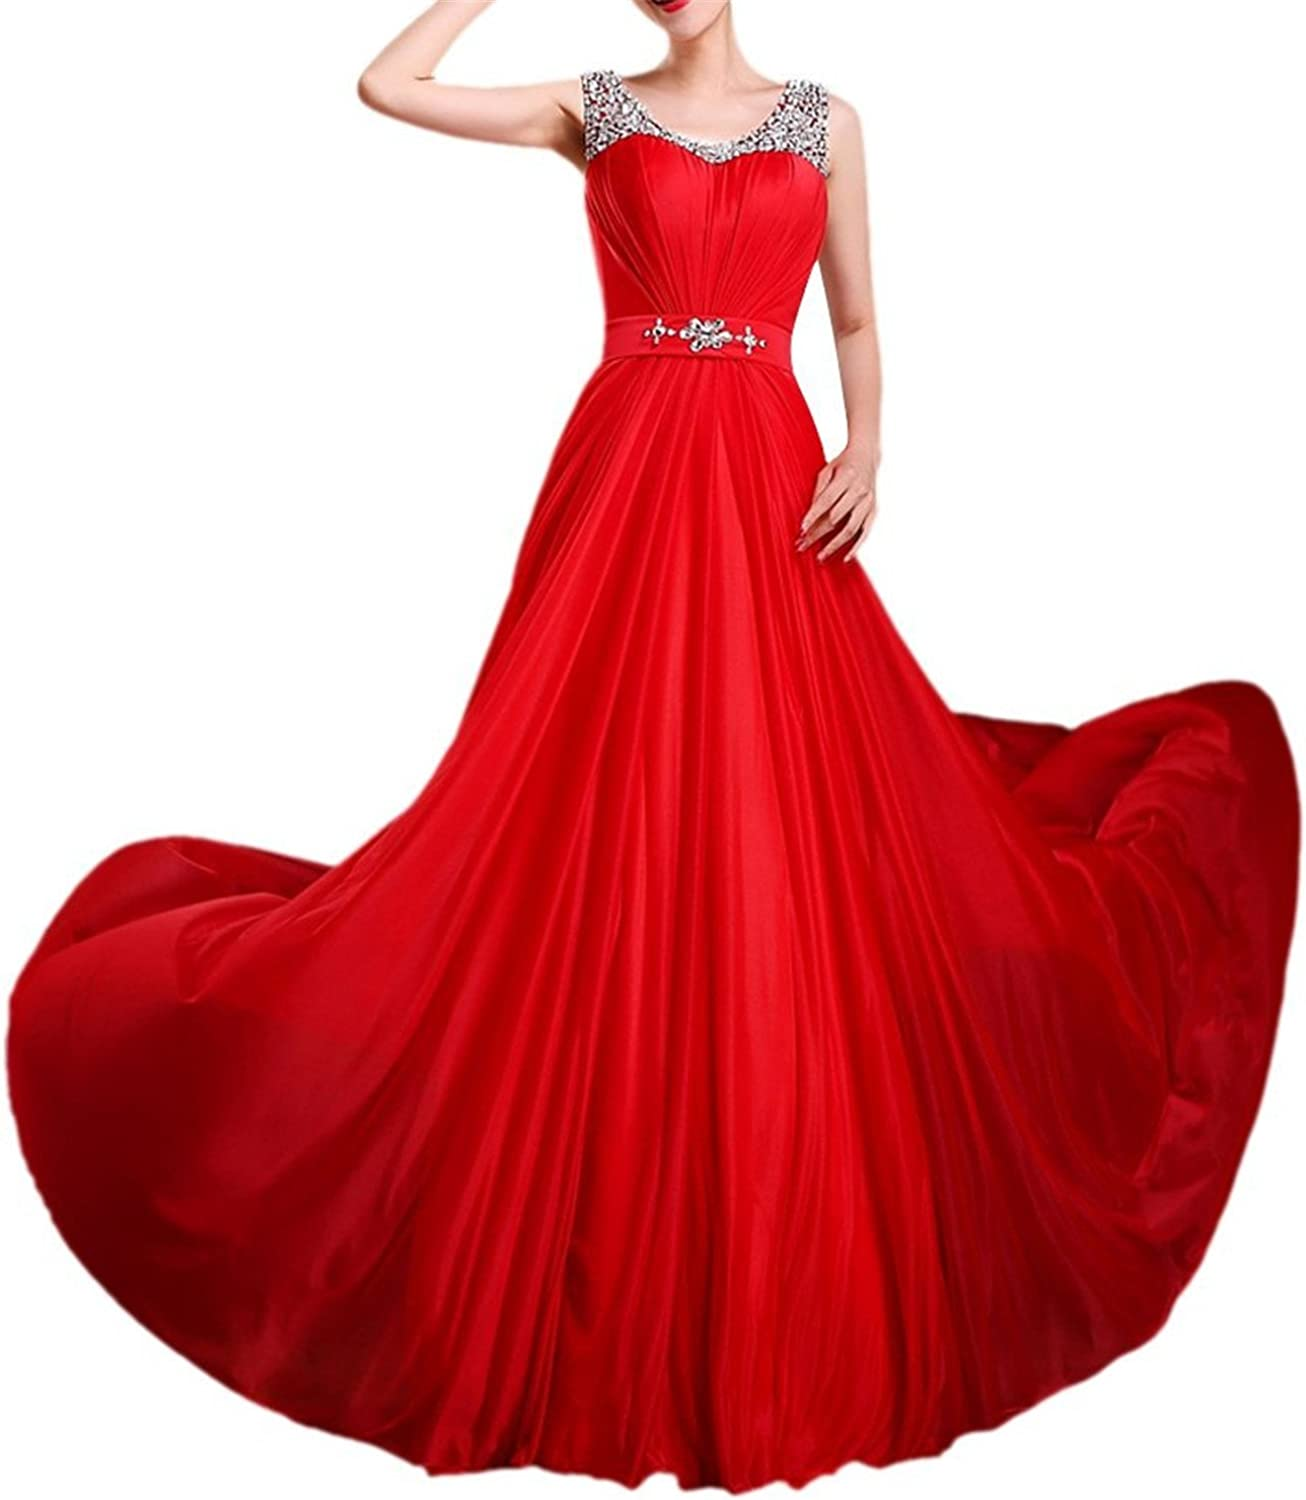 Oppicong Women's Sleeveless Prom Bridesmaid Dresses Sequin Bead Long Evening Gown